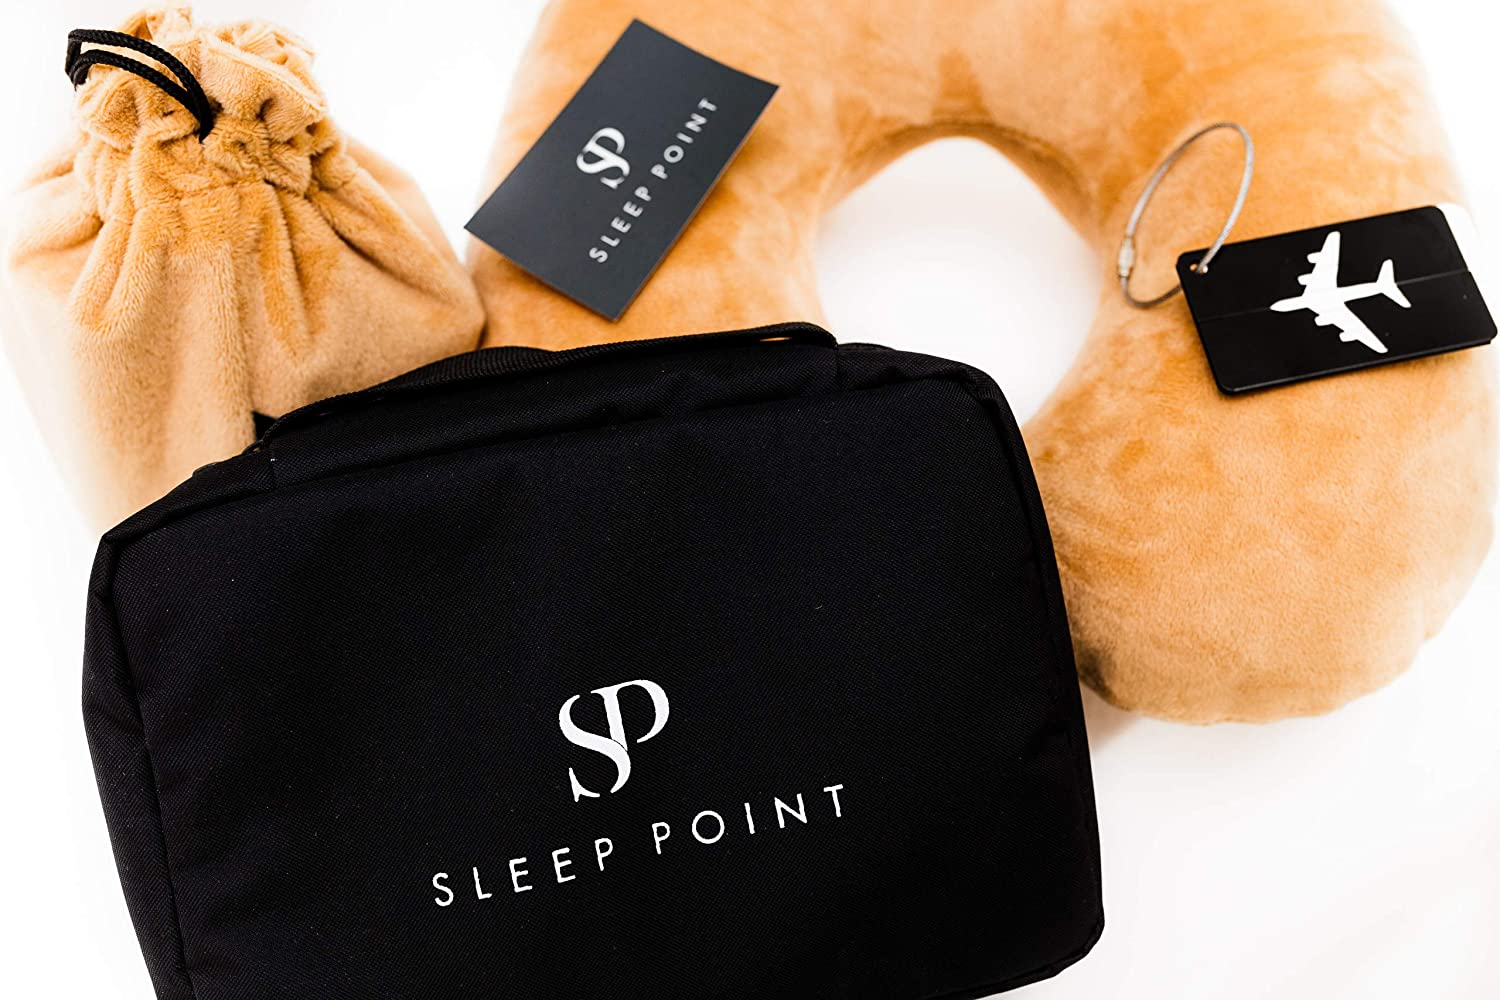 SLEEP POINT Airplane Travel Kit Travel Toiletry Bag Neck Pillow Sleeping Mask Traveling Set for Women Men Hanging Cosmetic Bag Travel Comfort Bundle Luggage Tag Included